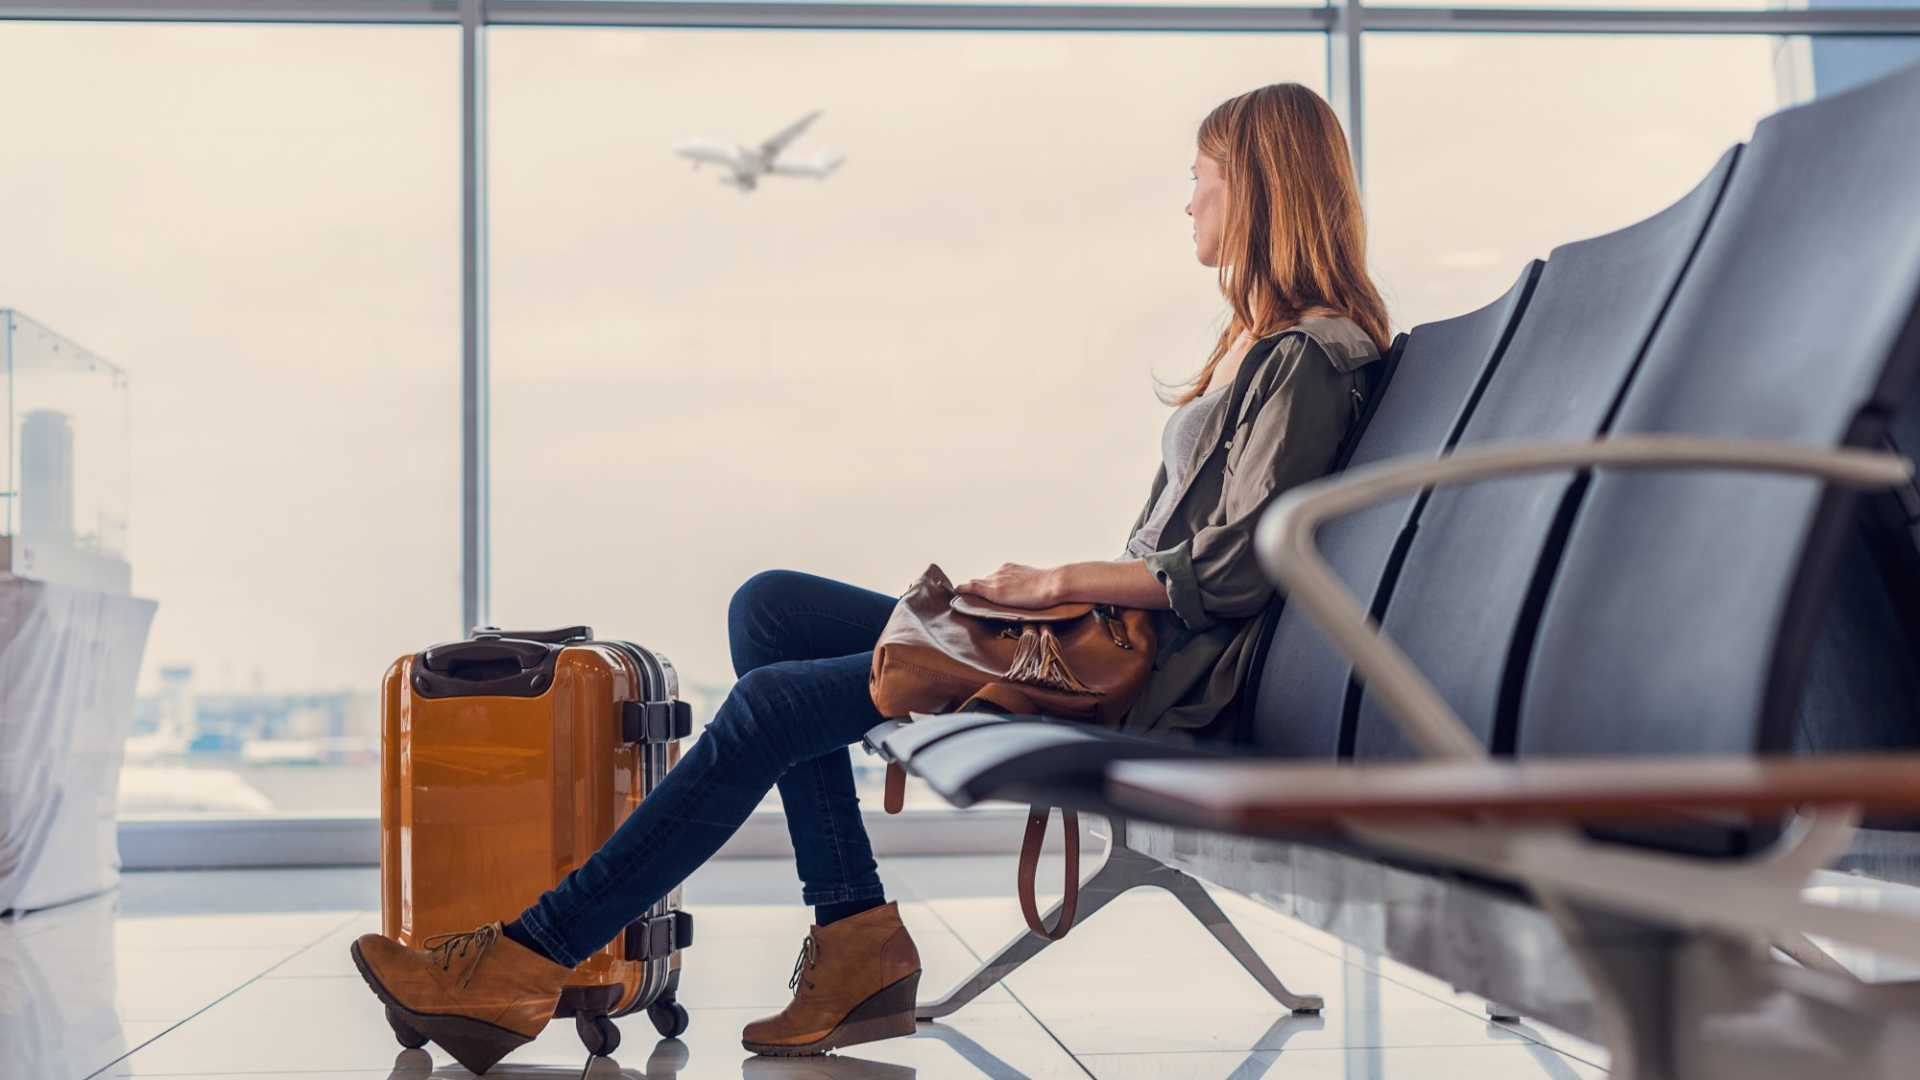 Work Travel Stressing You Out? Try These 4 Science-Backed Tools to Keep Your Mind Calm on the Road